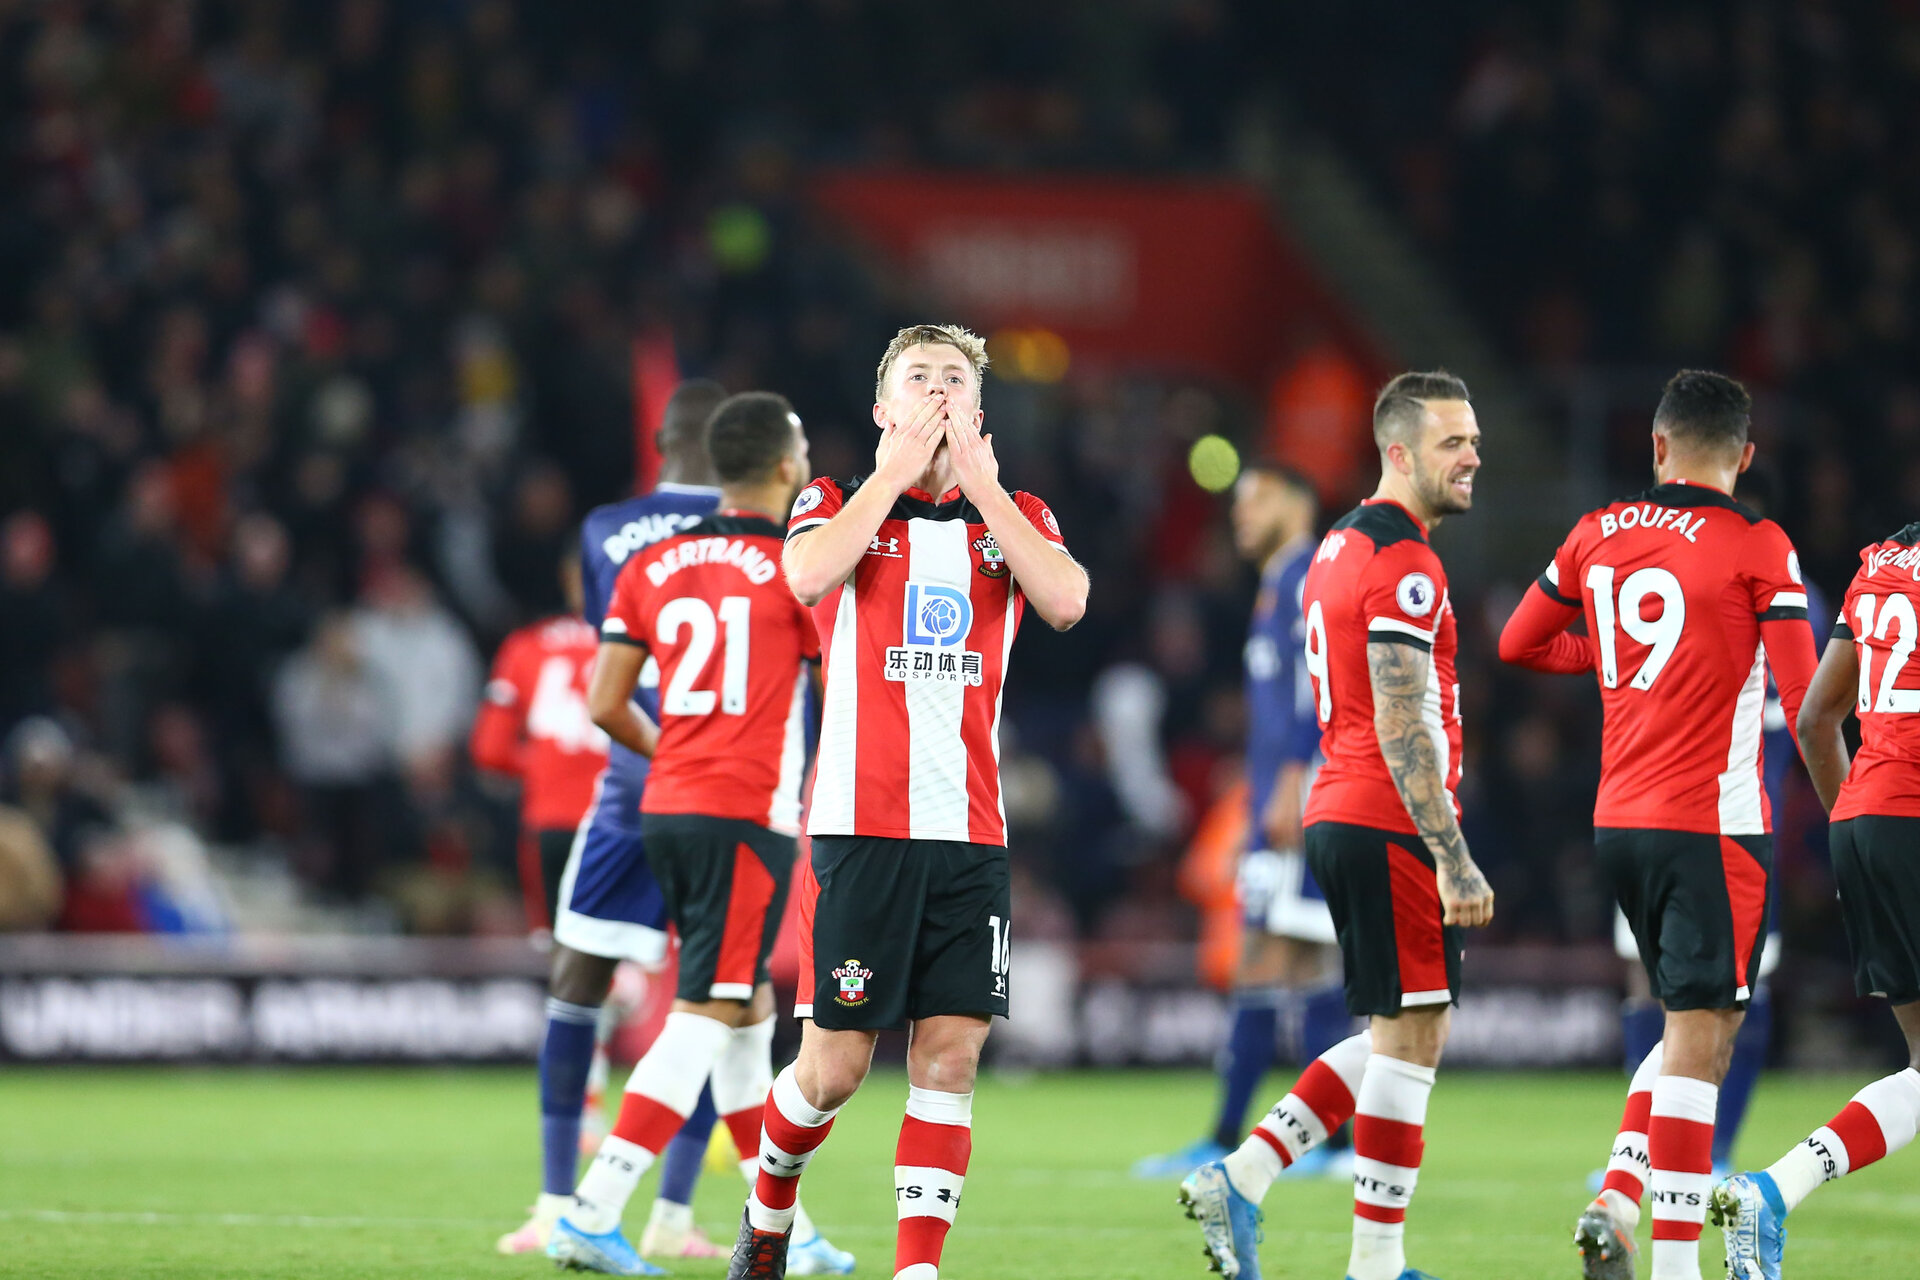 SOUTHAMPTON, ENGLAND - NOVEMBER 30: James Ward-Prowse during the Premier League match between Southampton FC and Watford FC at St Mary's Stadium on November 30, 2019 in Southampton, United Kingdom. (Photo by Isabelle Field/Southampton FC via Getty Images)